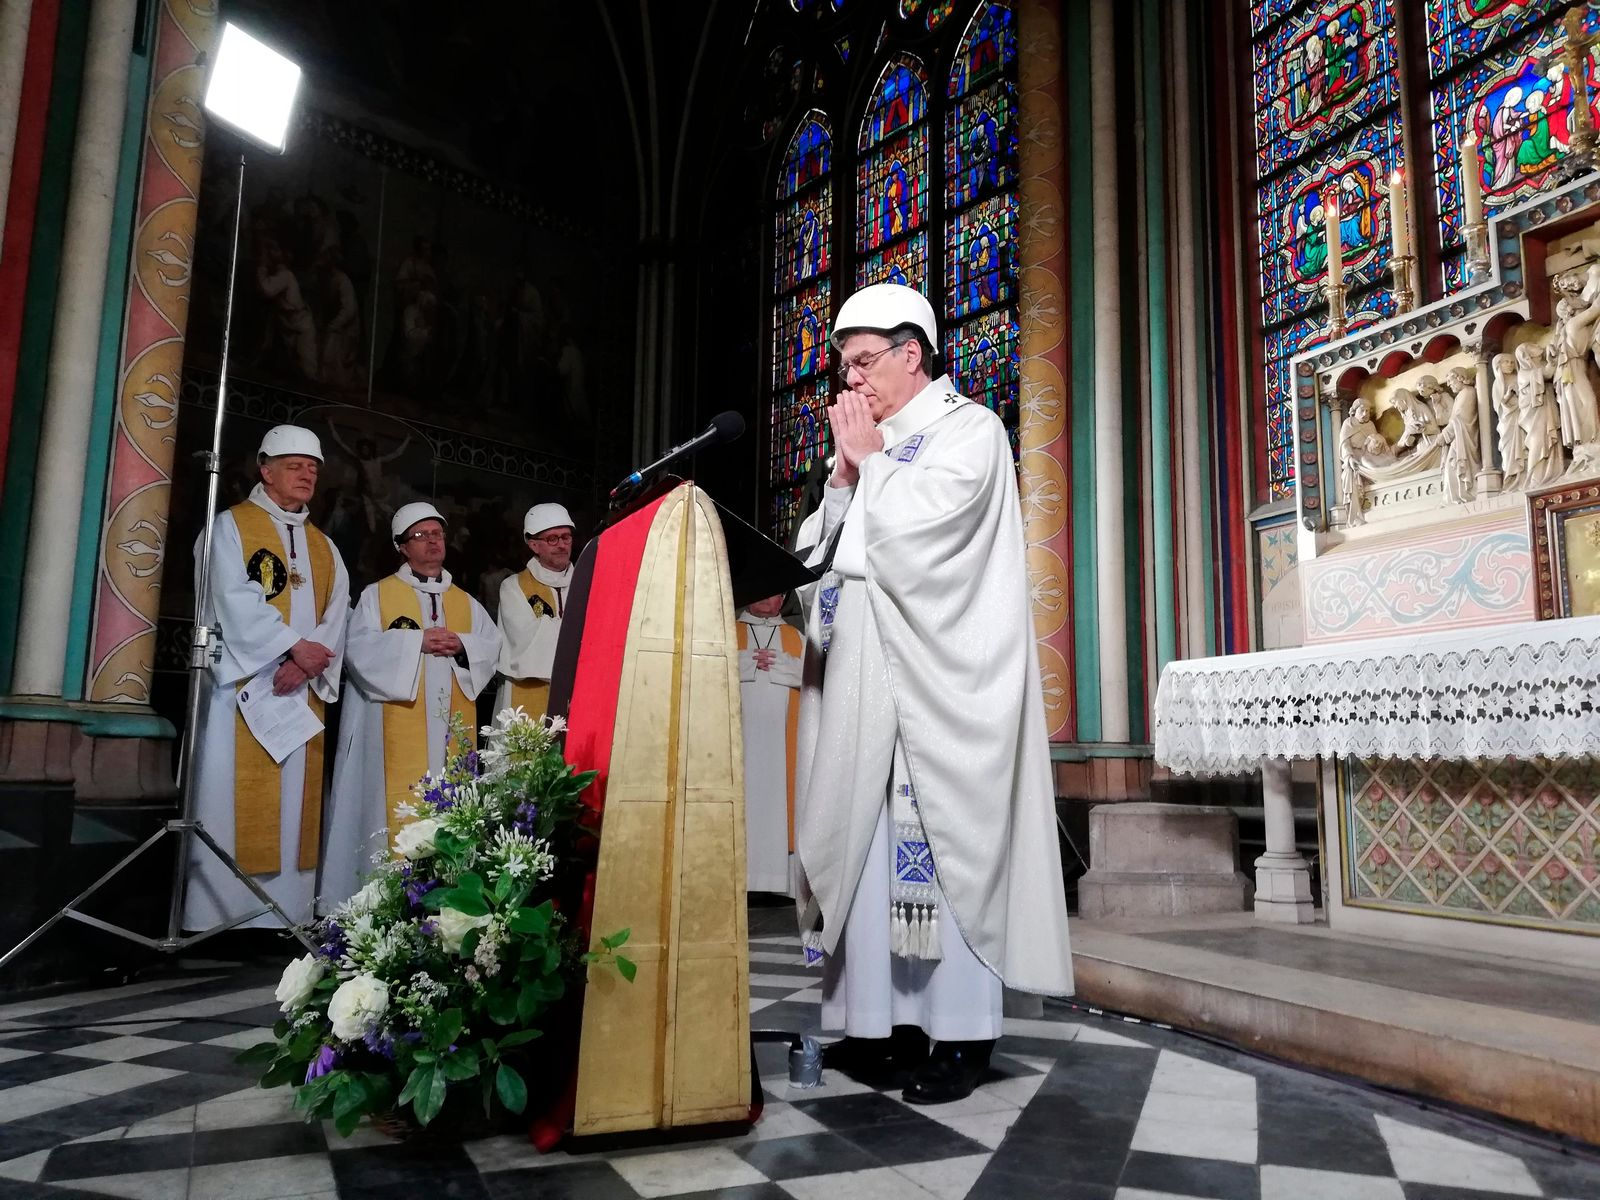 The Archbishop of Paris Michel Aupetit leads the first mass in a side chapel, two months after a devastating fire engulfed the Notre-Dame de Paris cathedral, Saturday June 15, 2019, in Paris. (Karine Perret, Pool via AP)